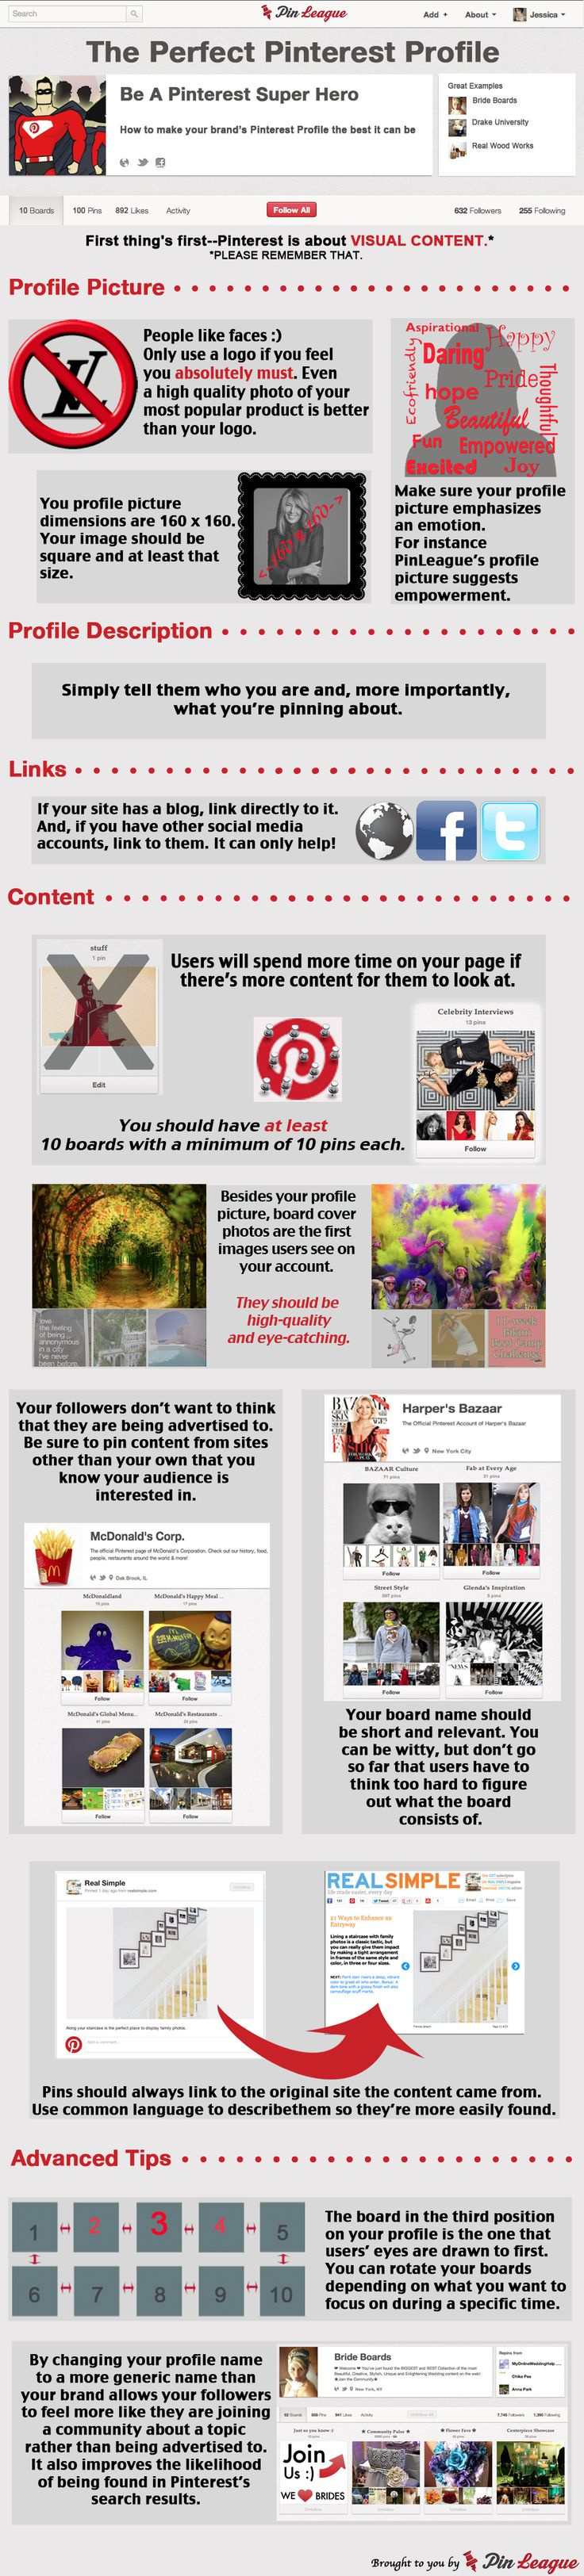 """At least 10 boards with at least 10 pins each.  I better get cracking!  How to create the """"Perfect Pinterest Profile"""" - helpful infographic with valueable hints."""